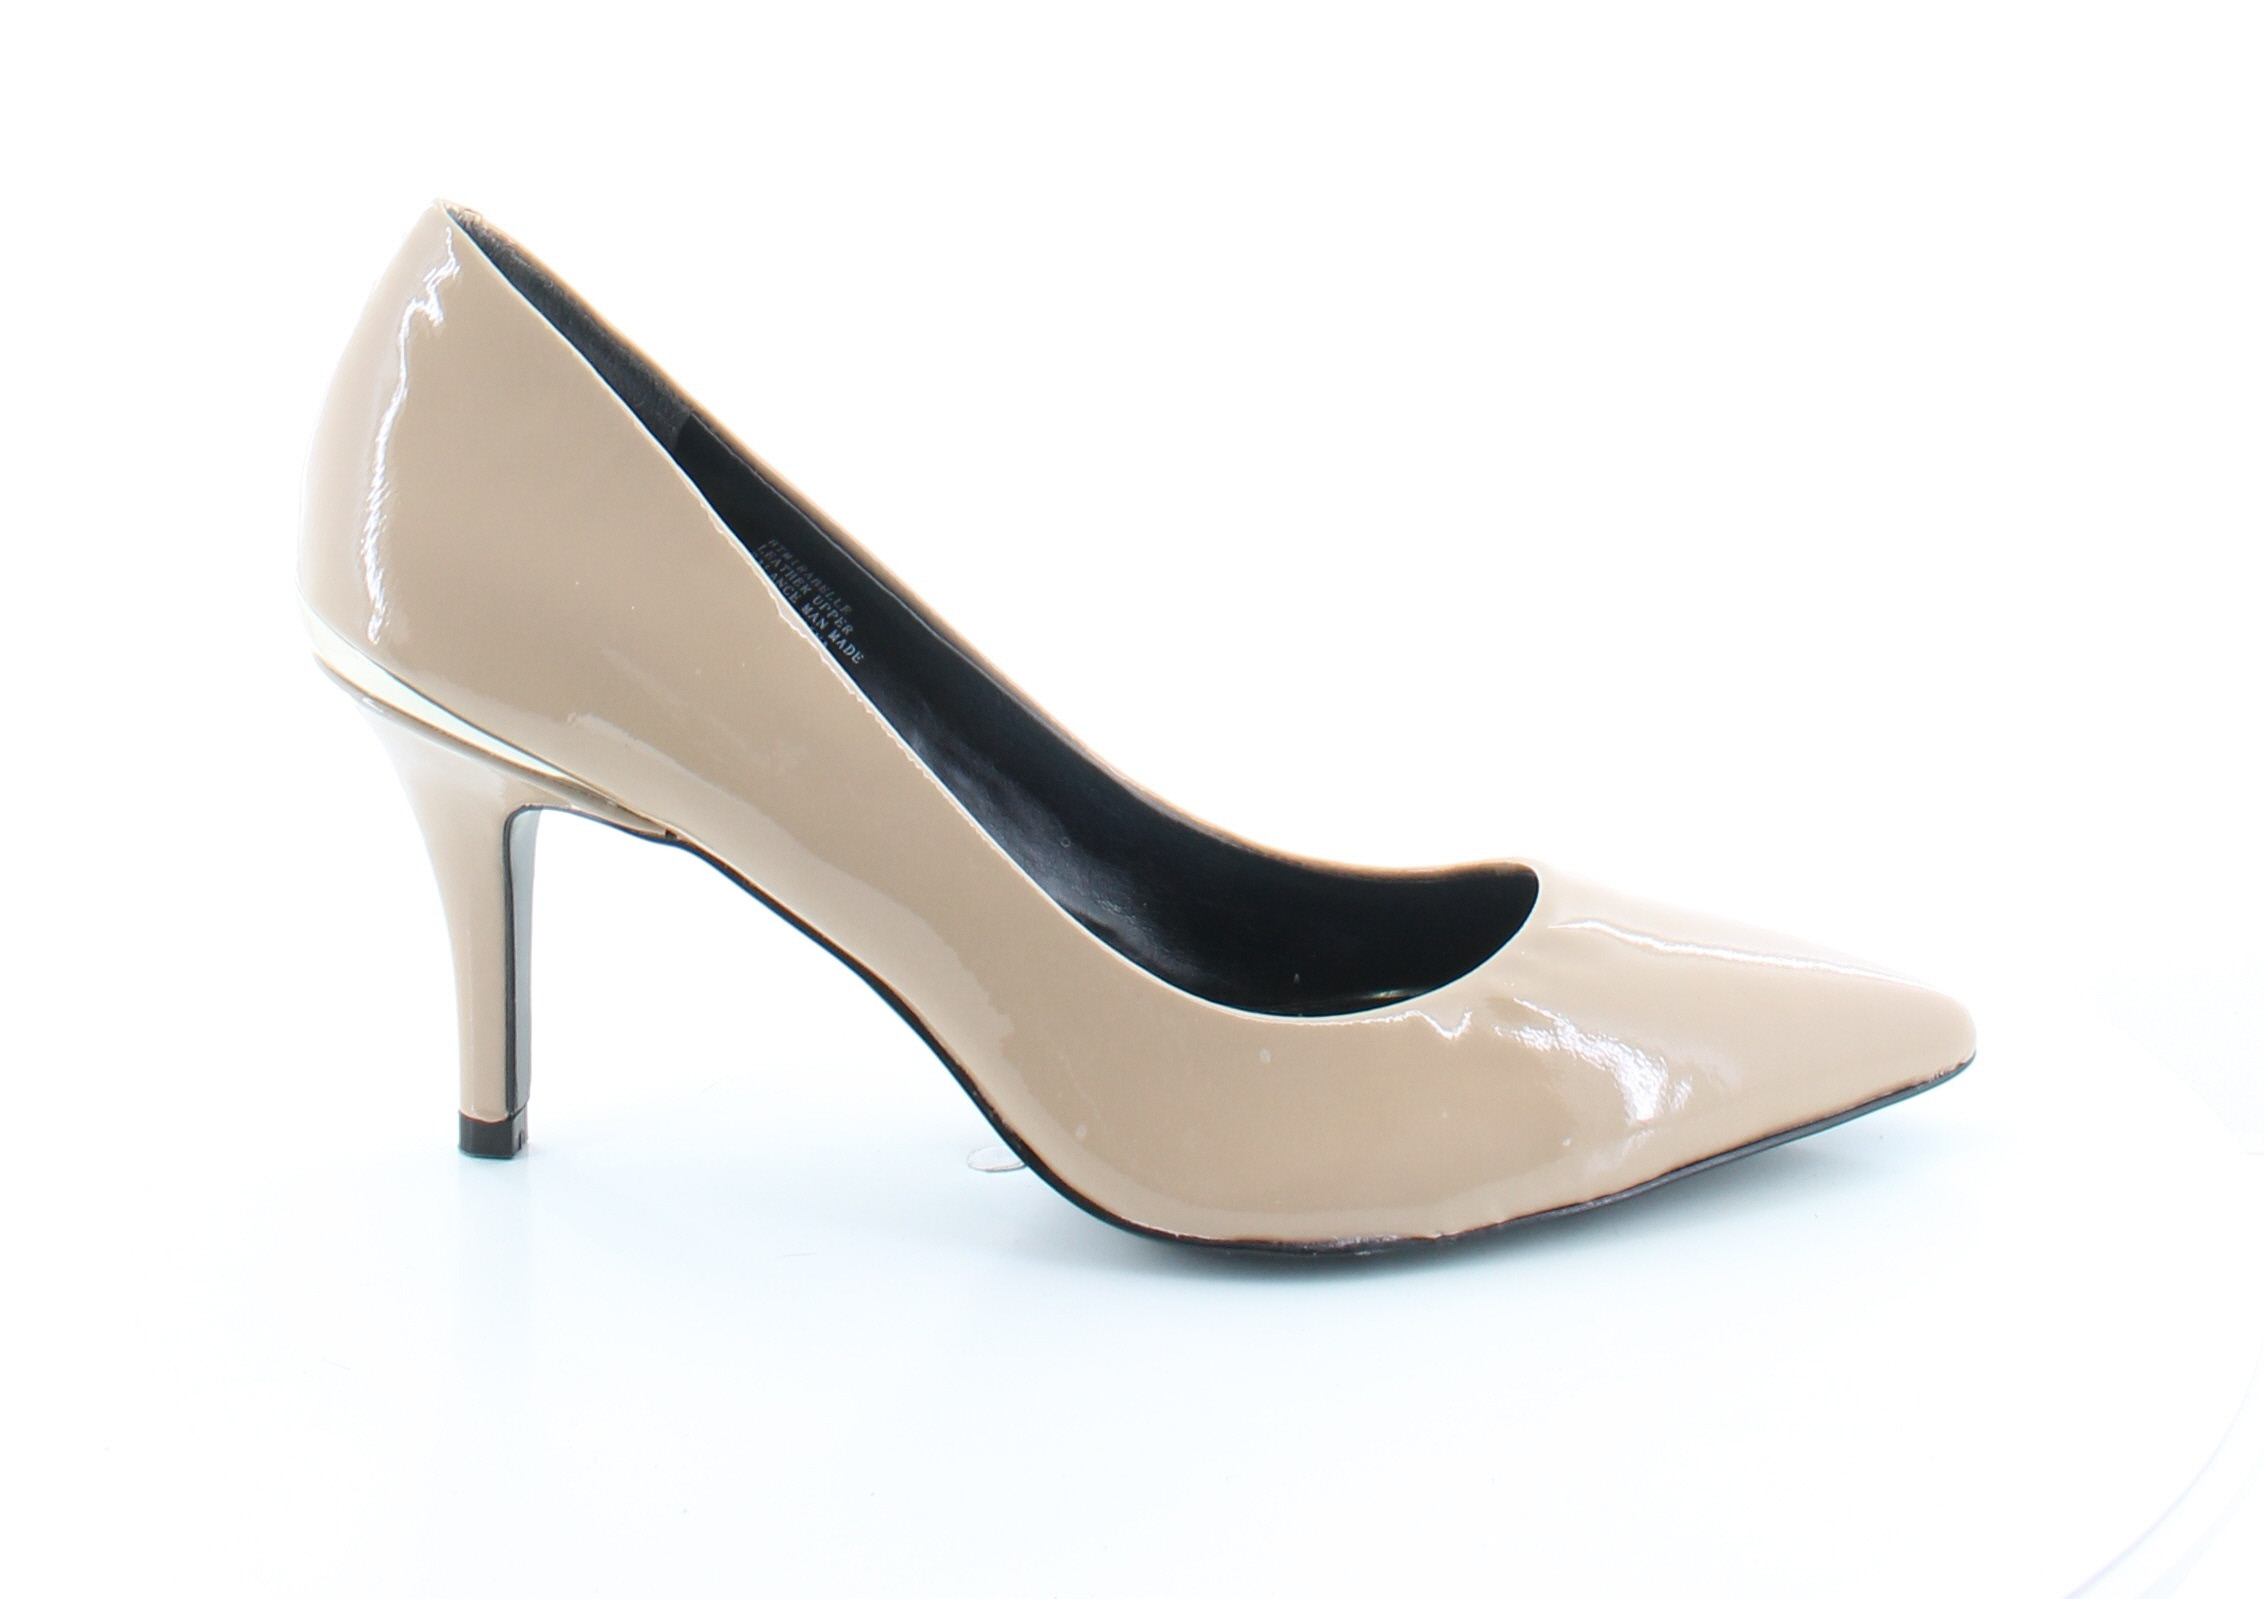 Details about Boutique 9 New Mirabelle Beige Womens Shoes Size 10 m